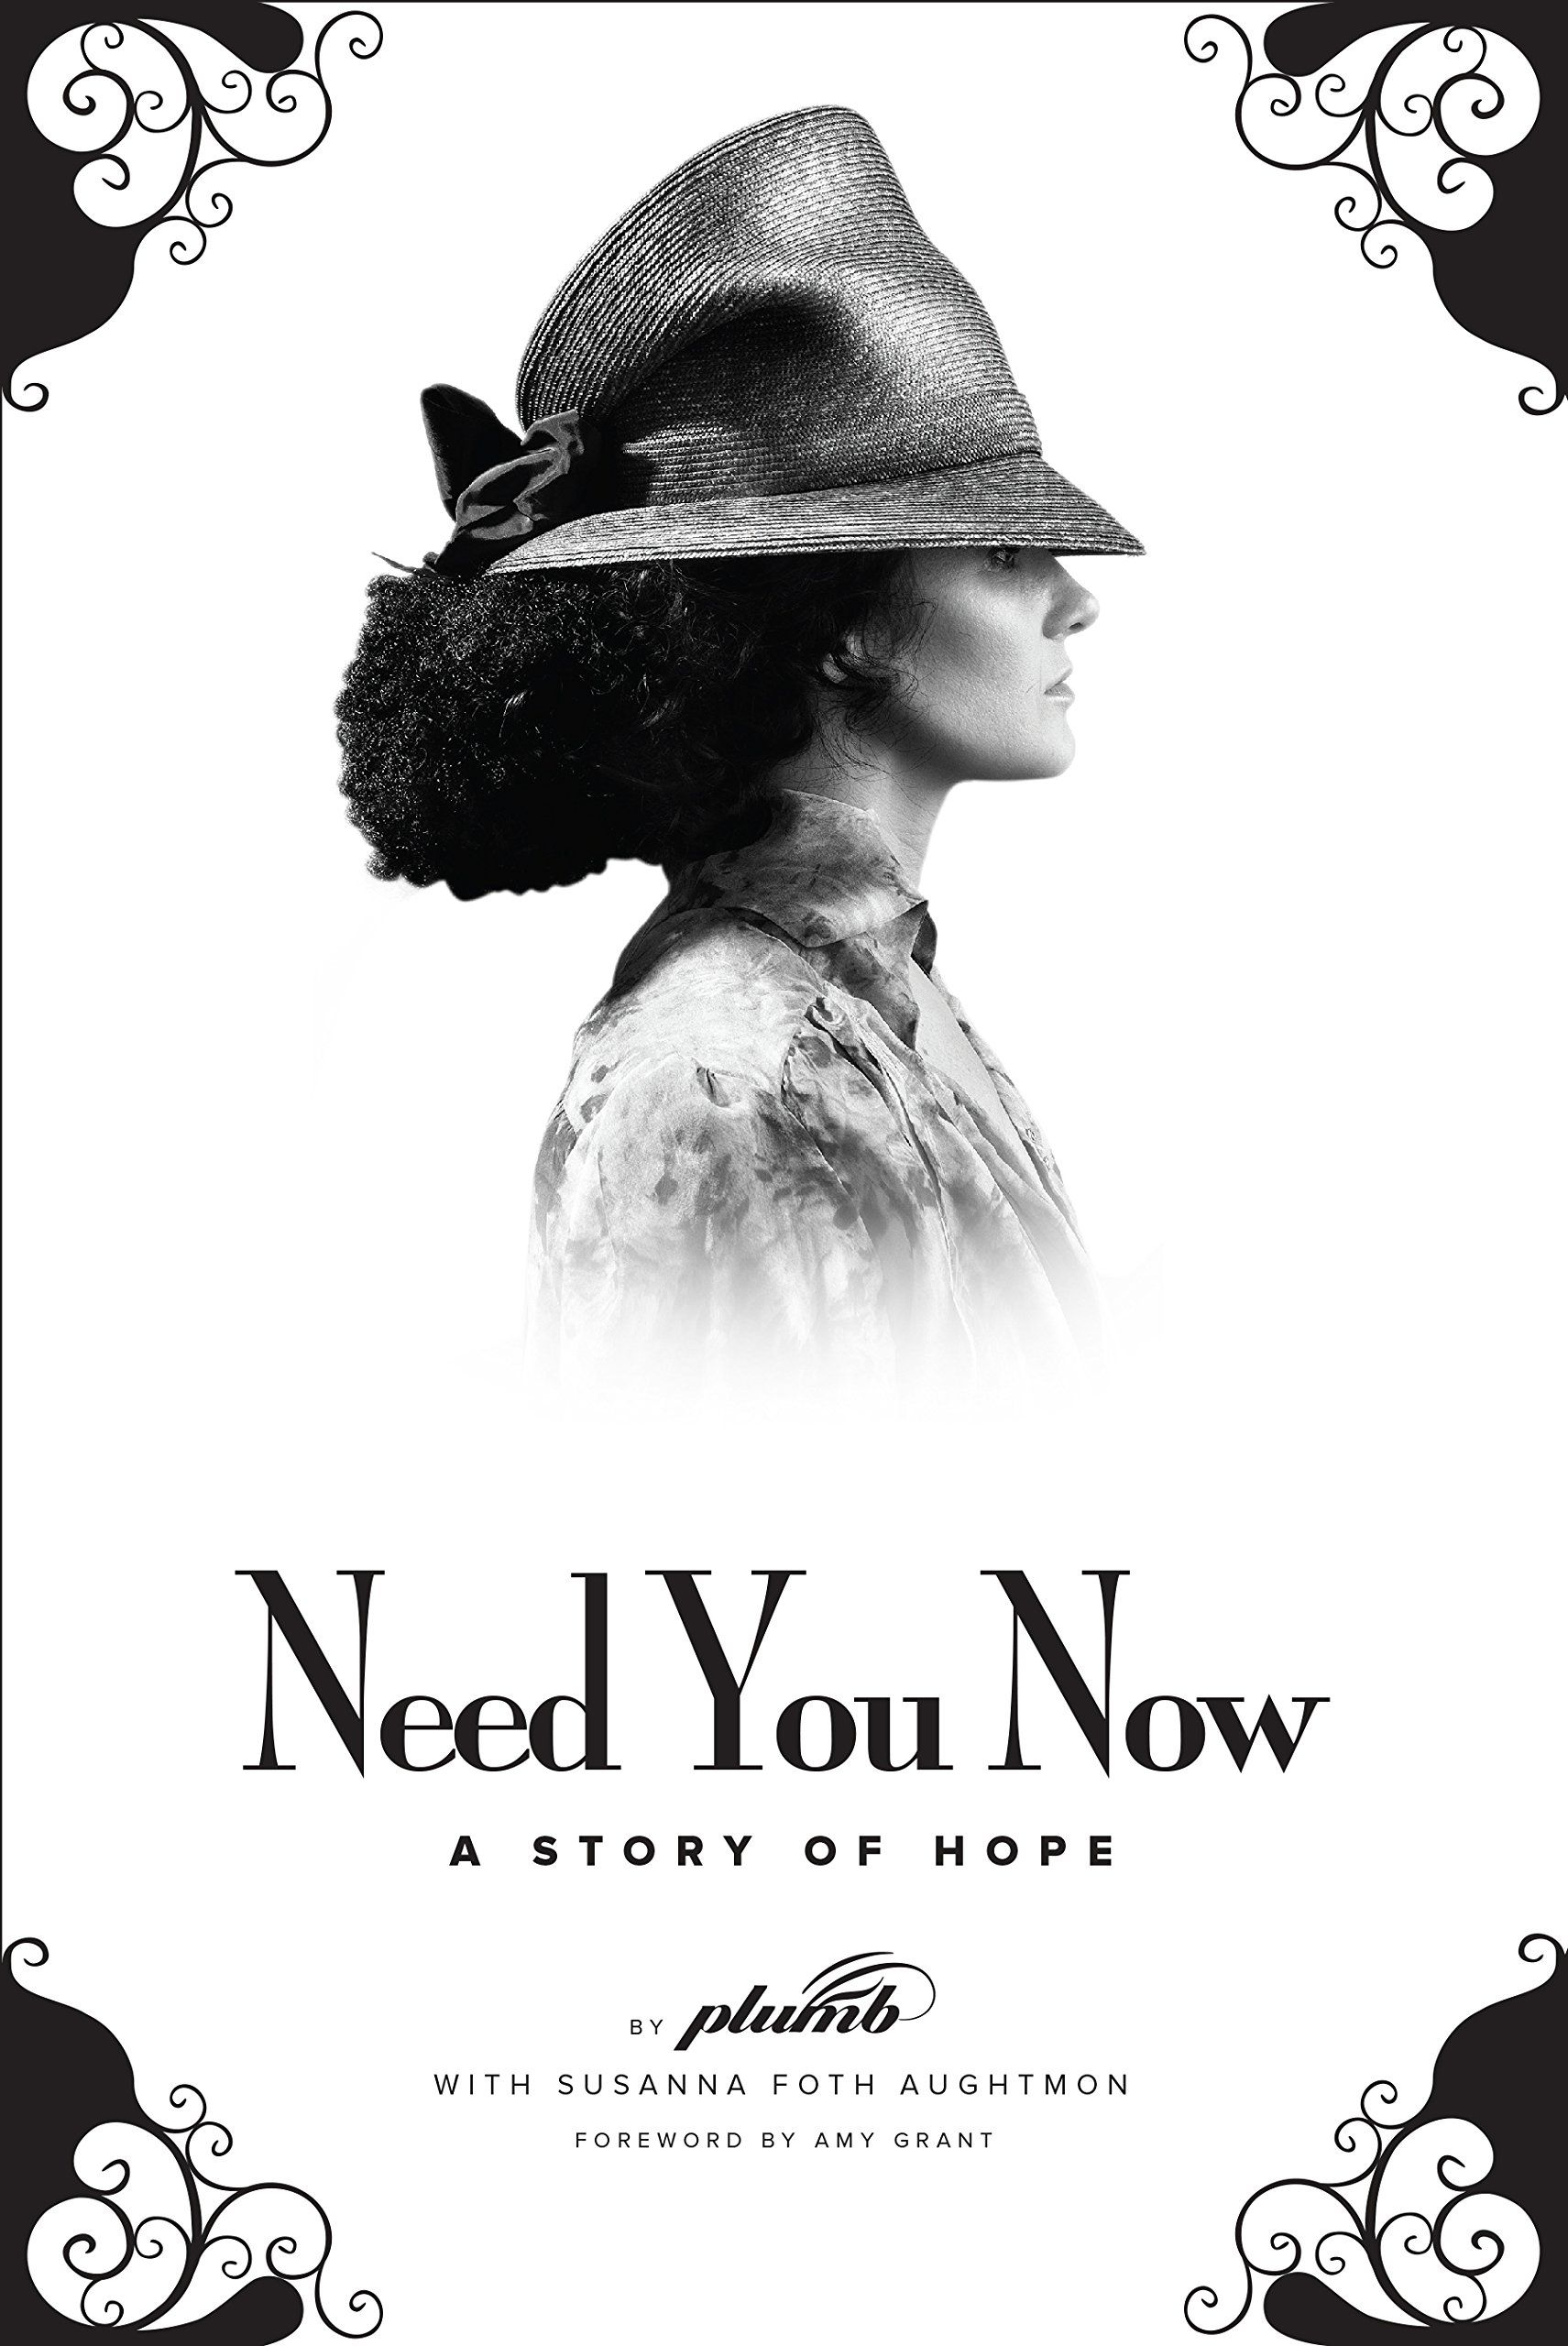 Need You Now A Story Of Hope Amazon Kindle Store Amy Grant You Now Thought Provoking Book